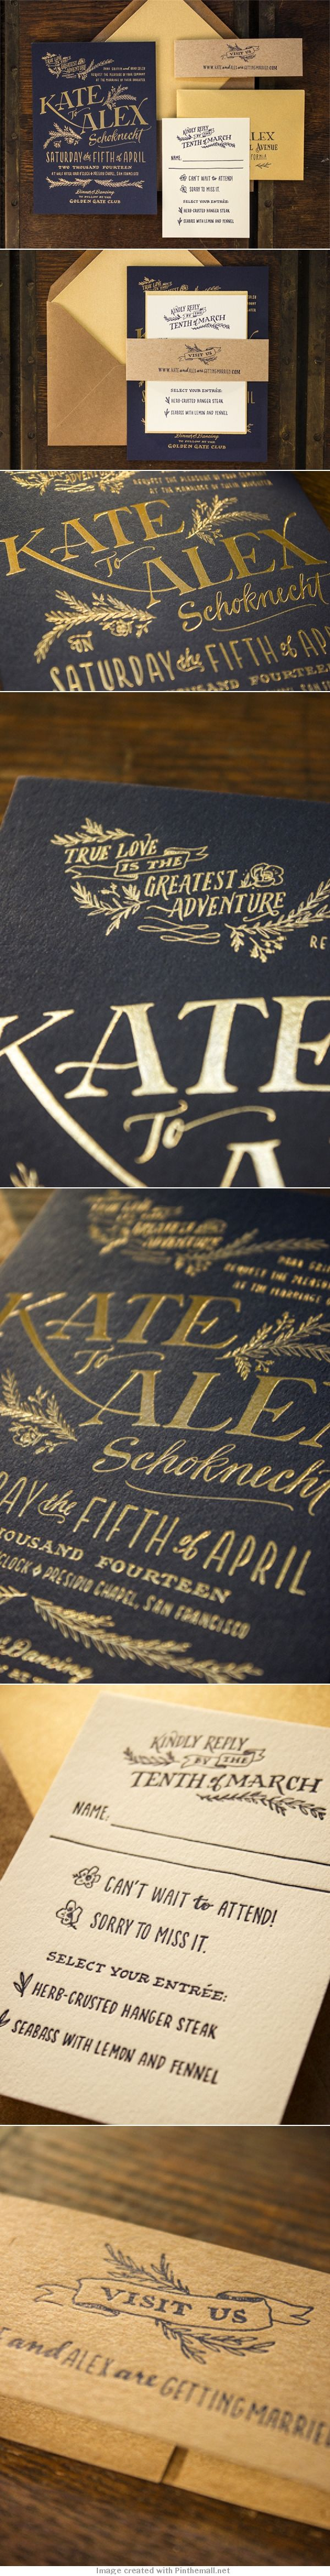 Elegant Rustic Hand Lettered Gold Foil Letterpress Wedding Invitations by Ladyfingers Letterpress via Oh So Beautiful Paper